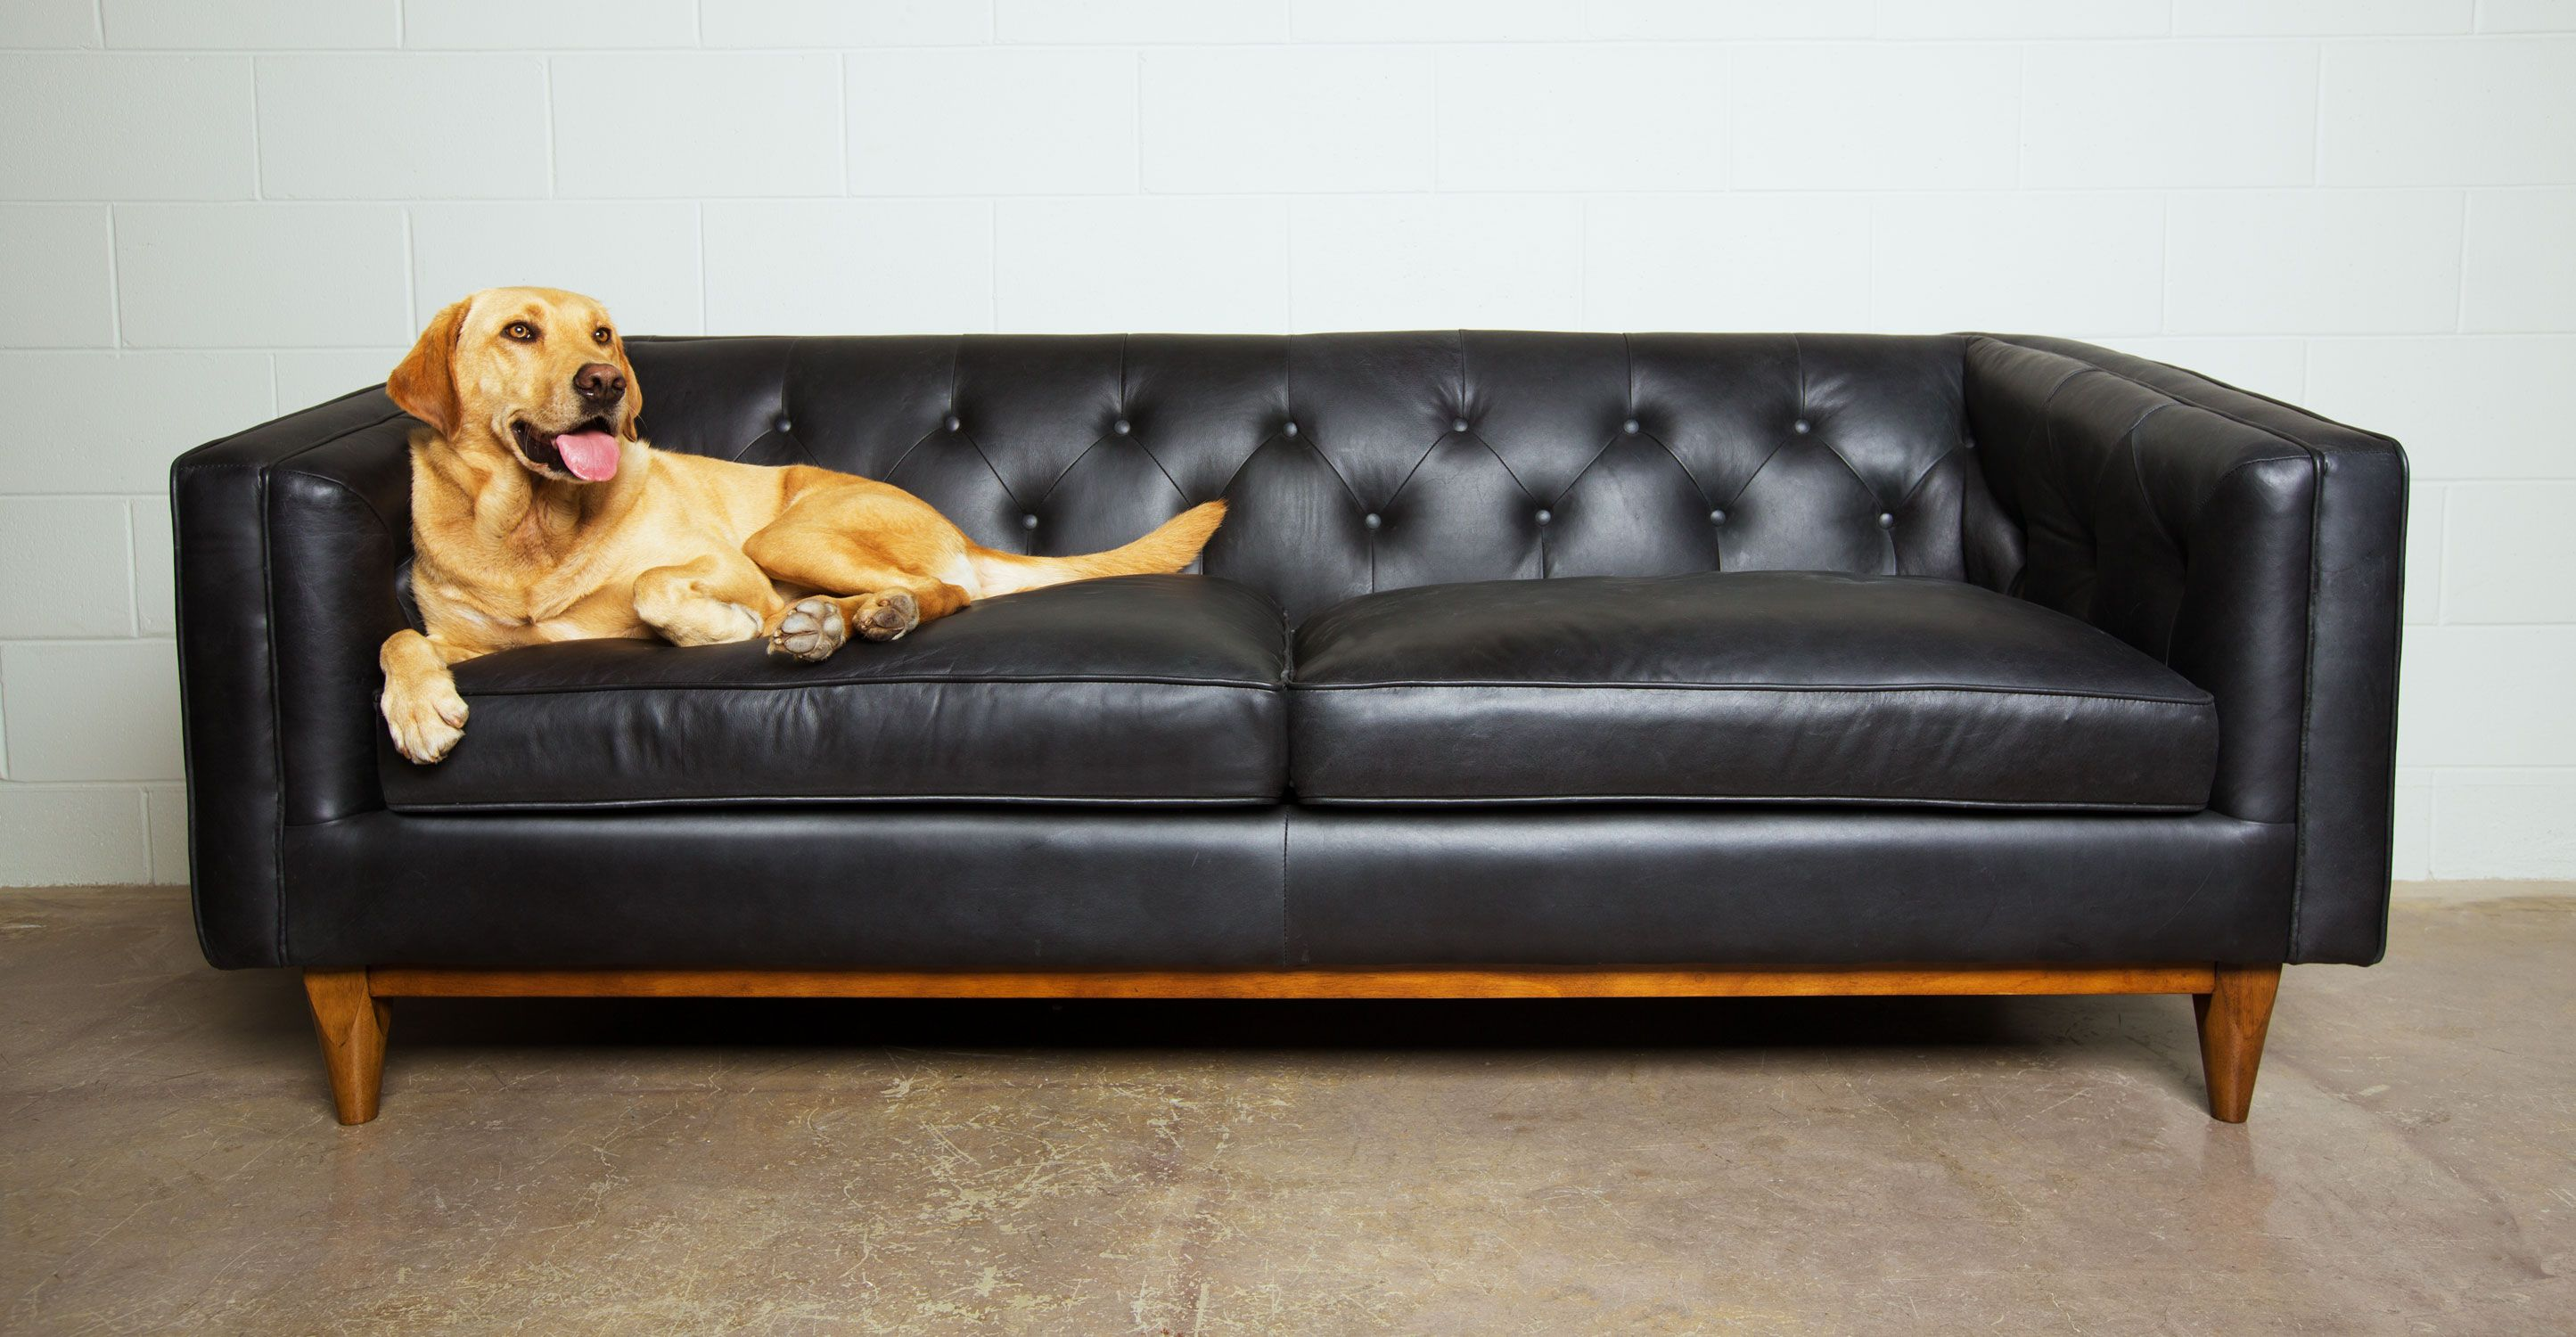 Black Leather Sofa In Walnut Wood Finish